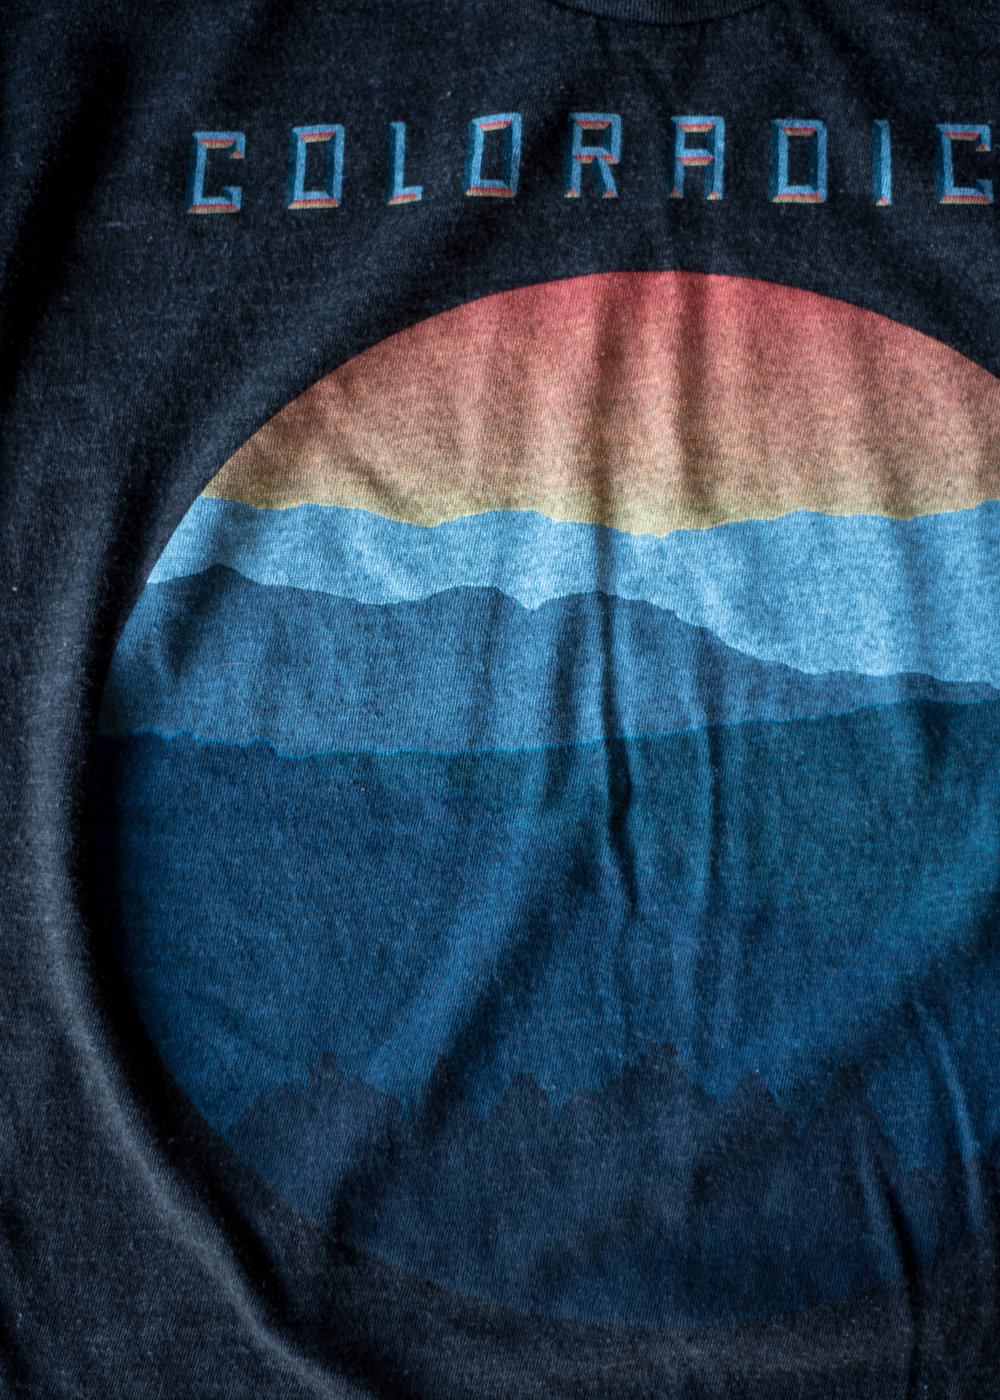 Coloradical. Print method SOFT. Screen printed on an American Apparel tri black shirt. Printed by A Small Print Shop.